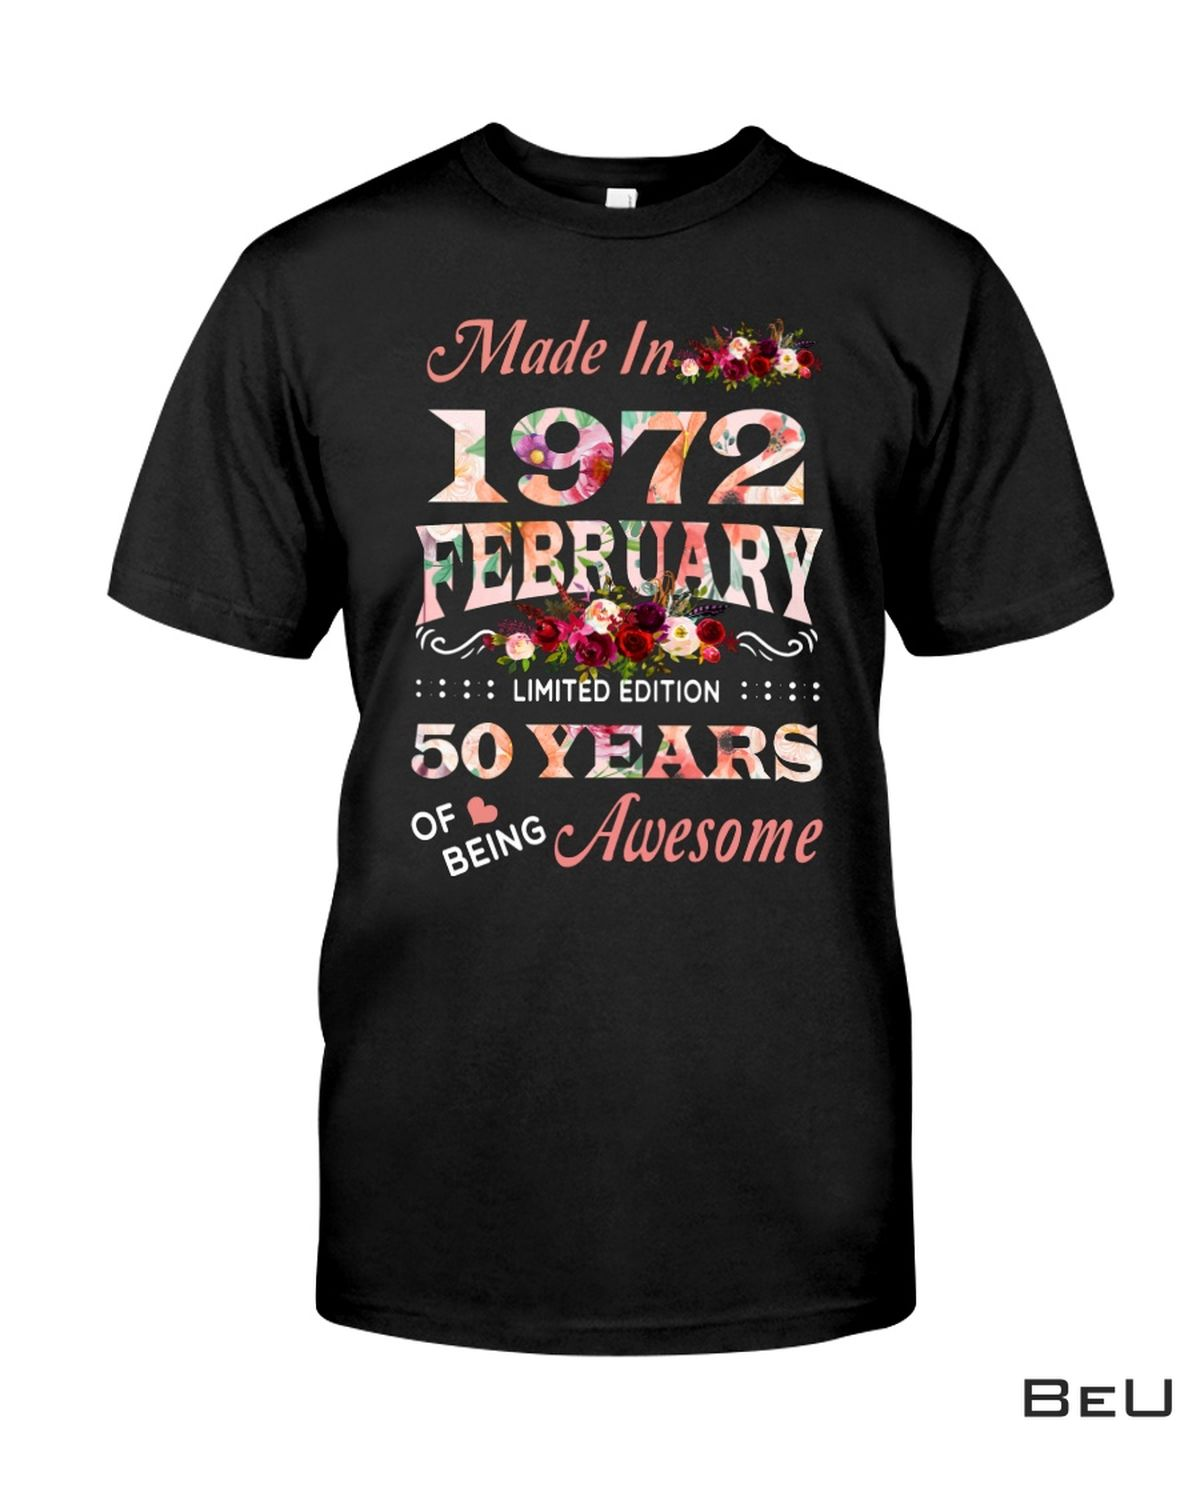 Made In 1972 February Limited Edition Shirt